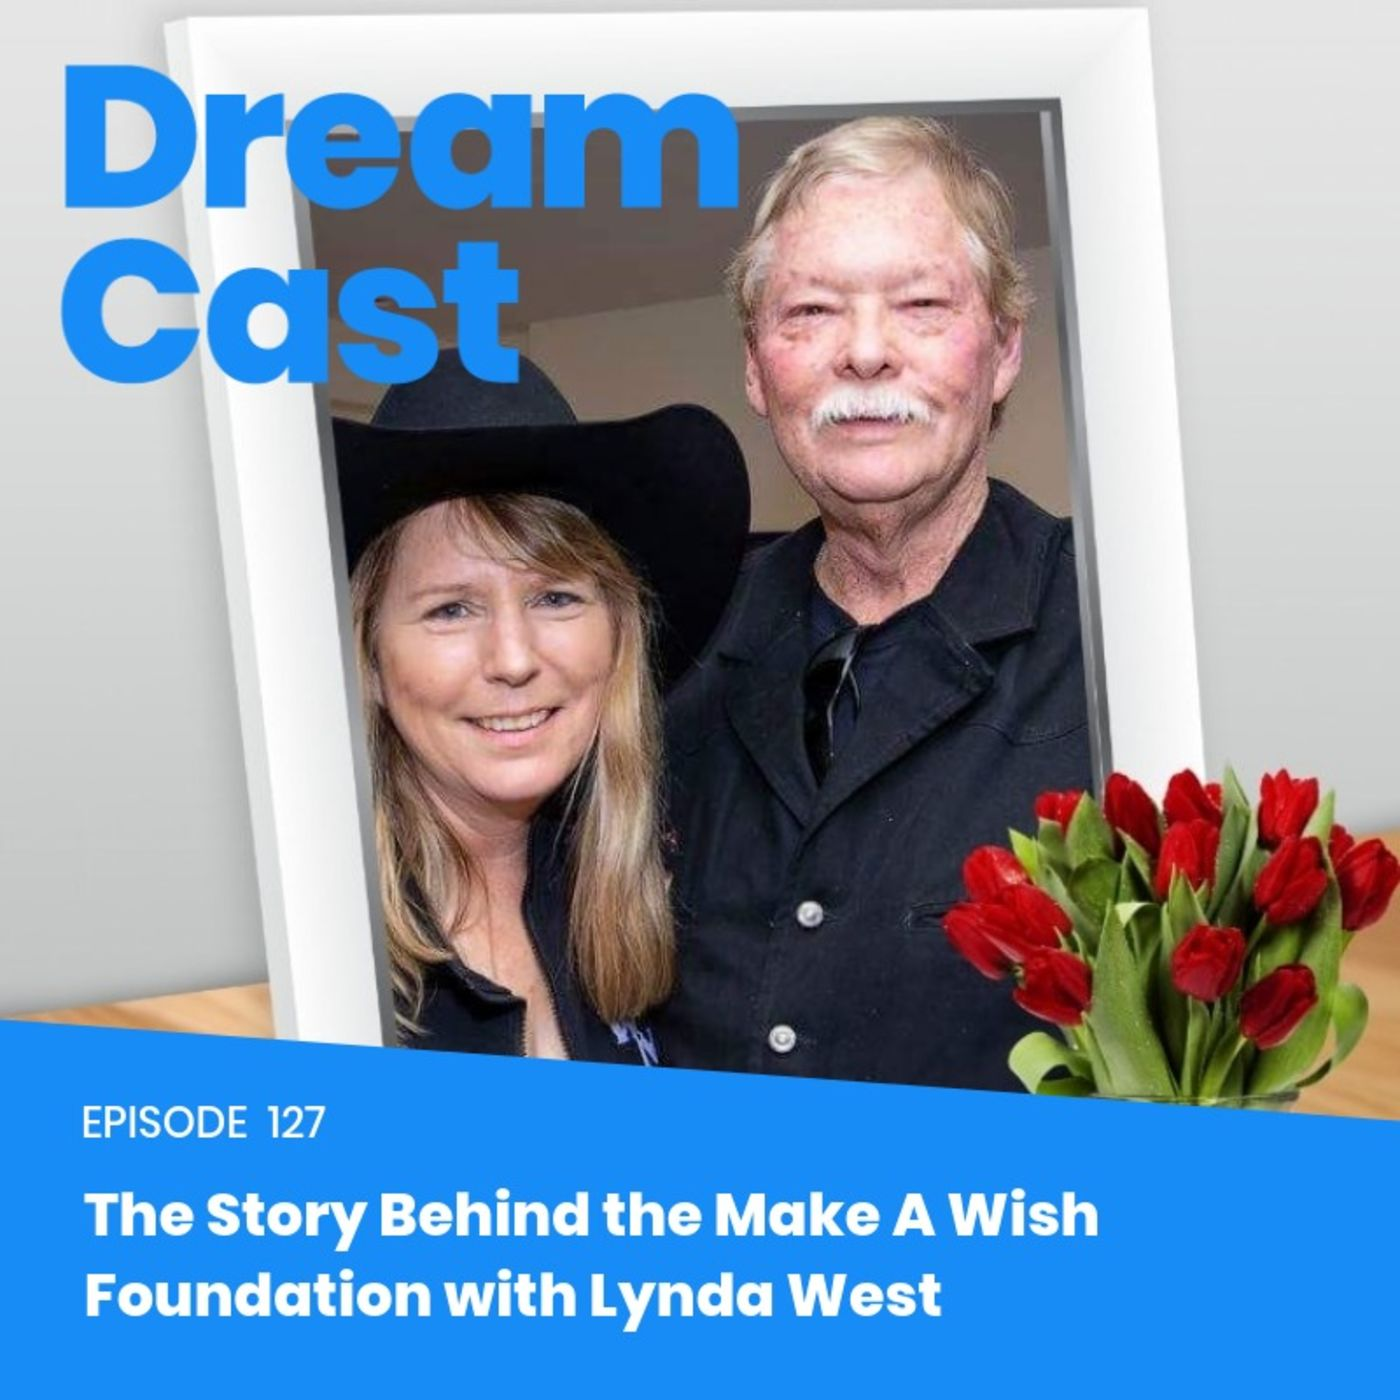 Episode 127 - The Story Behind the Make A Wish Foundation